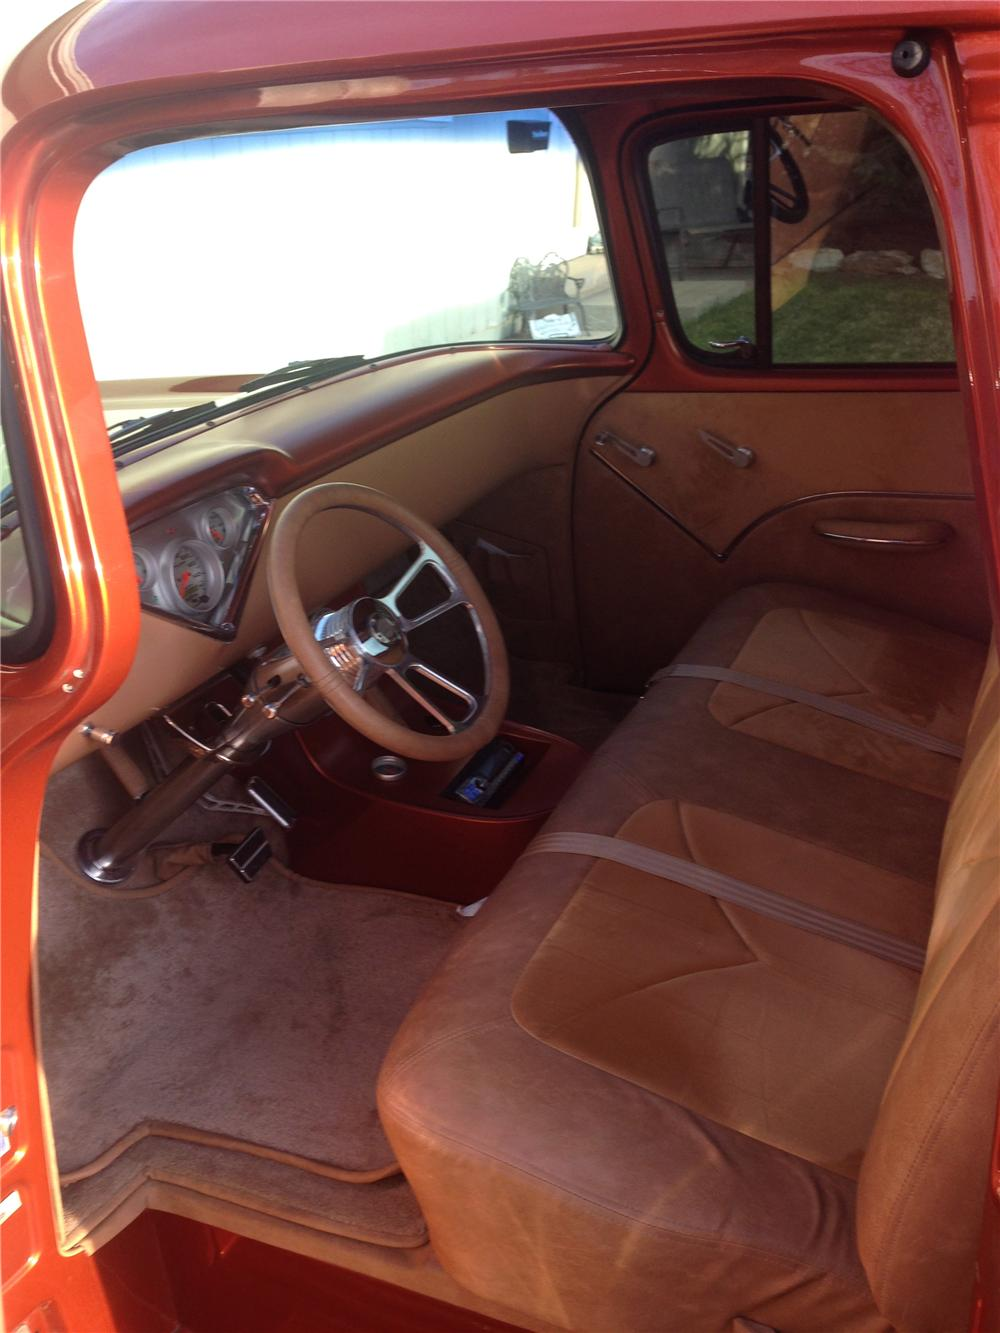 Tan Interior Car